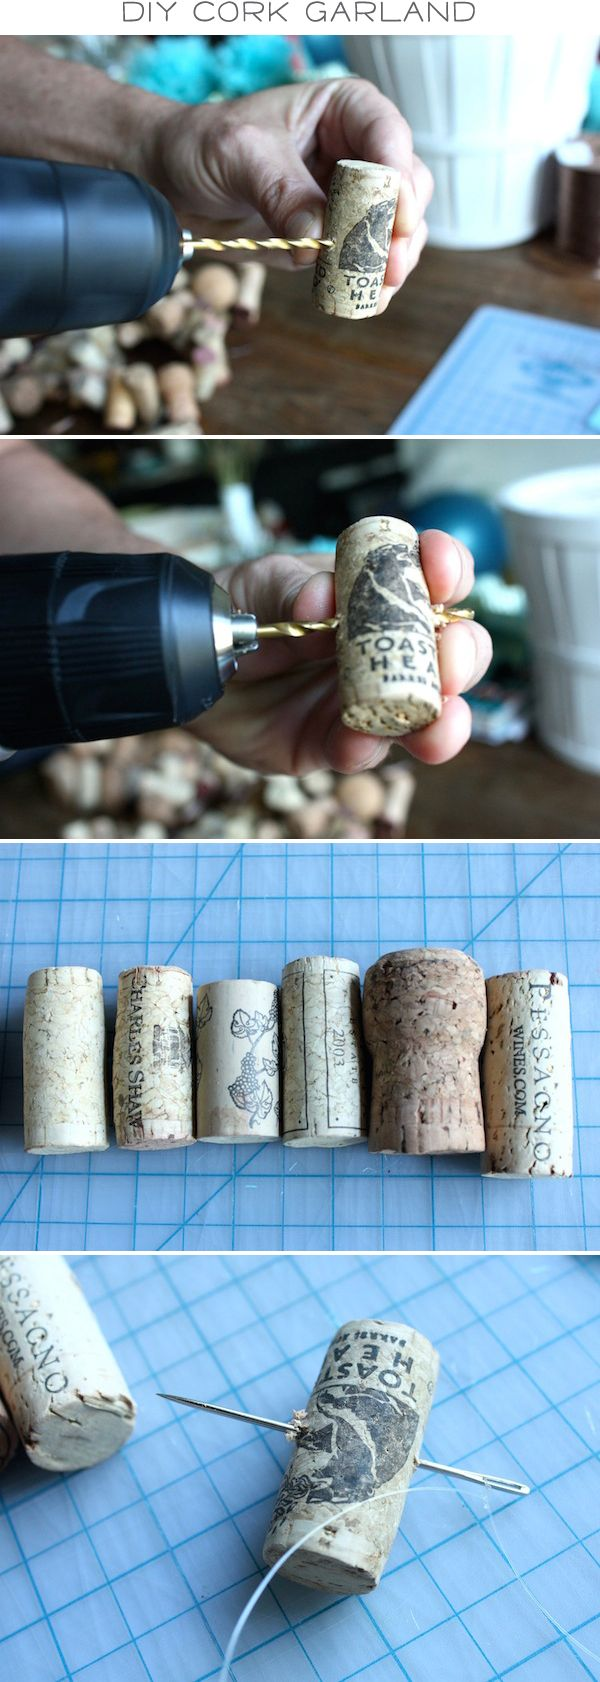 DIY cork garland